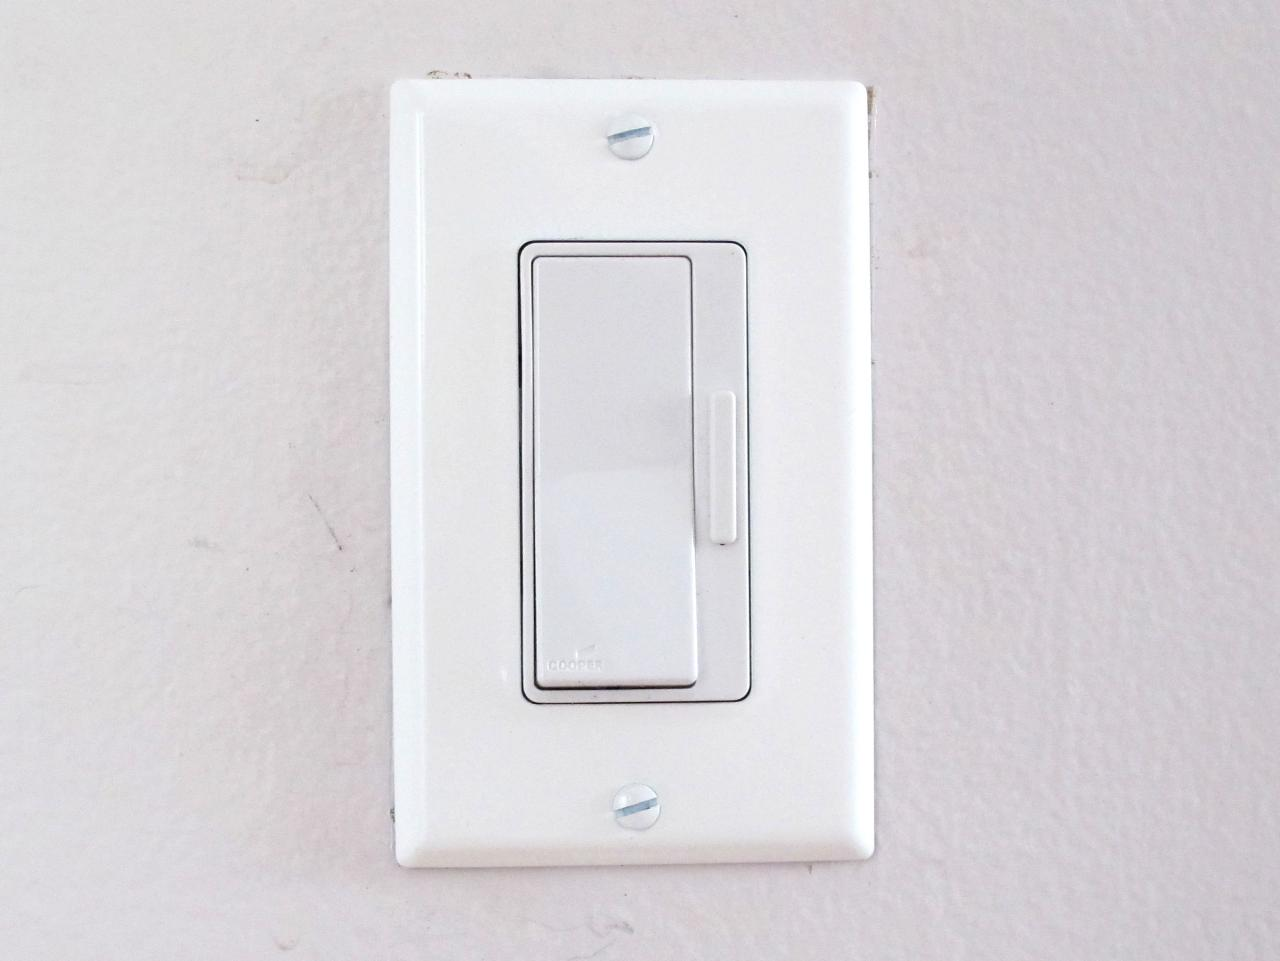 Zekering Dimmer Vervangen How To Install A Dimmer Switch How Tos Diy